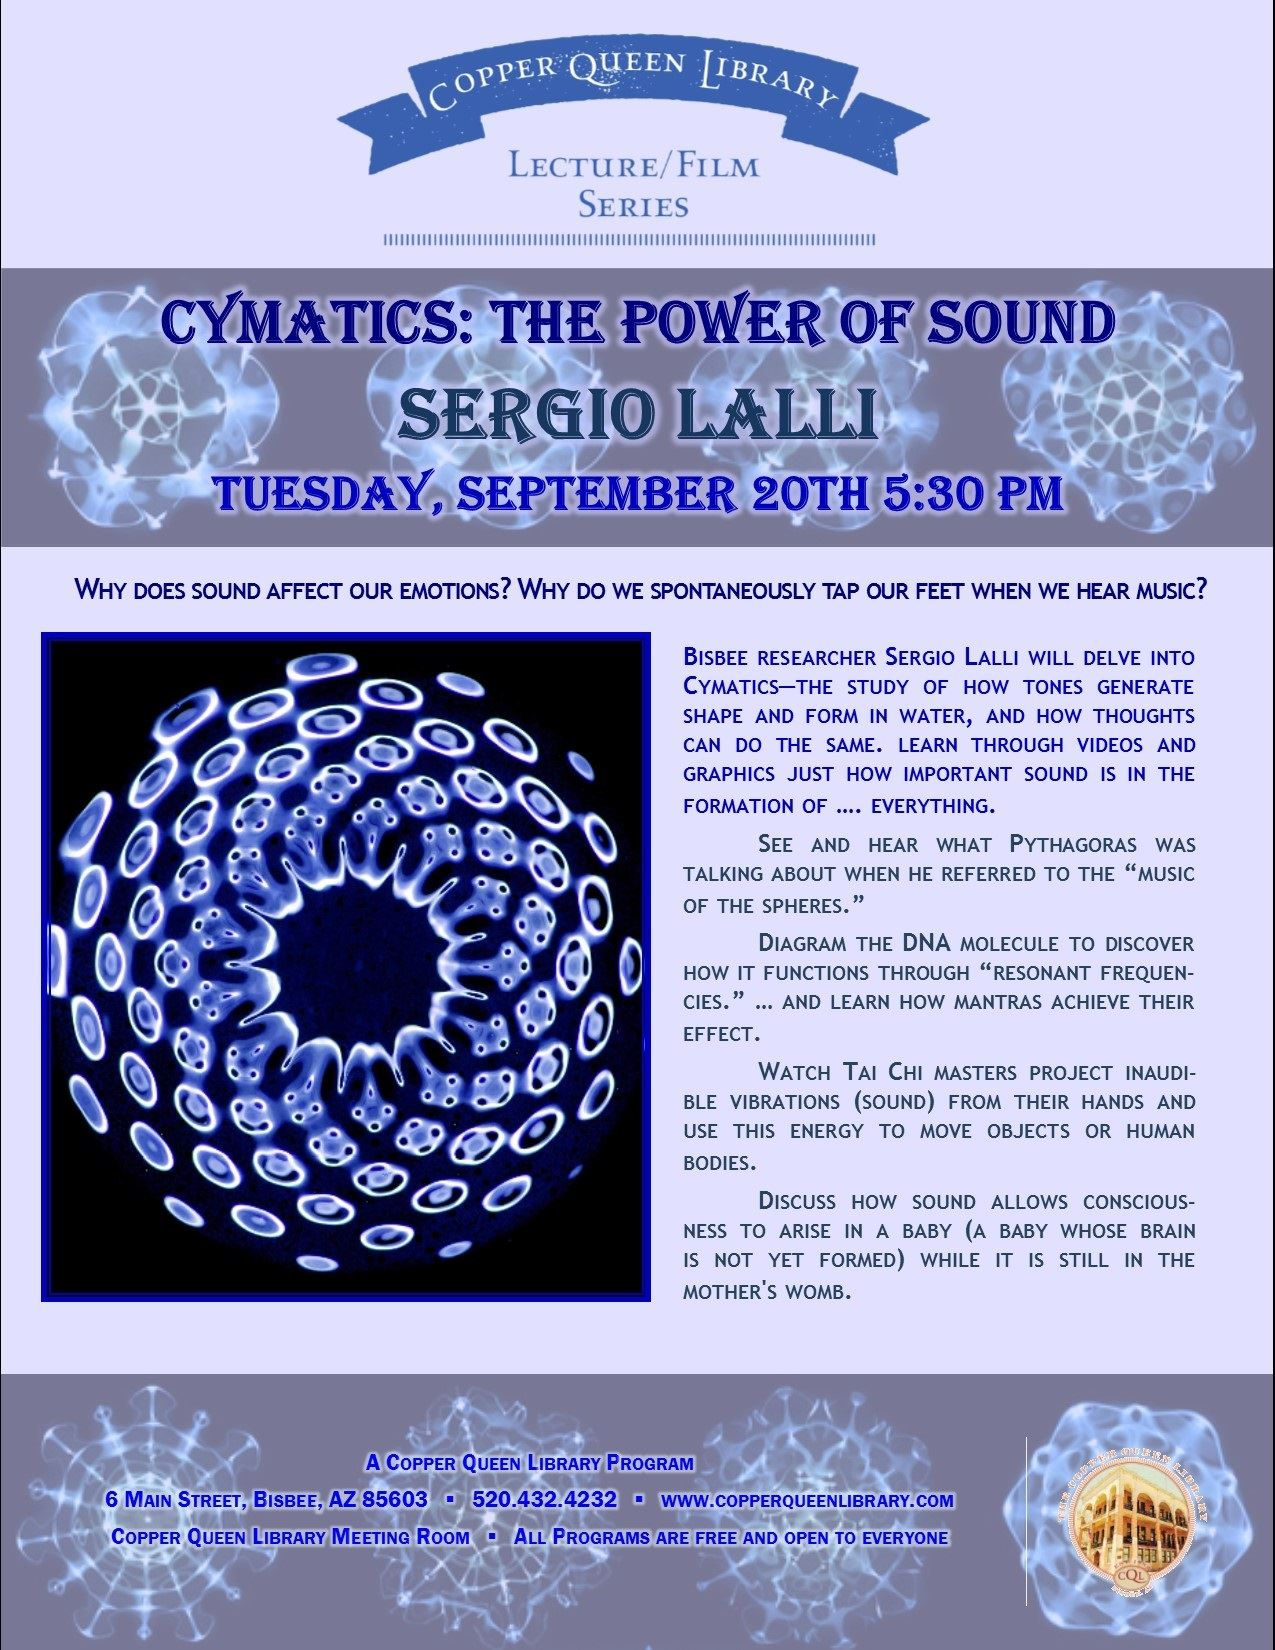 LALLI THE POWER OF SOUND POSTER